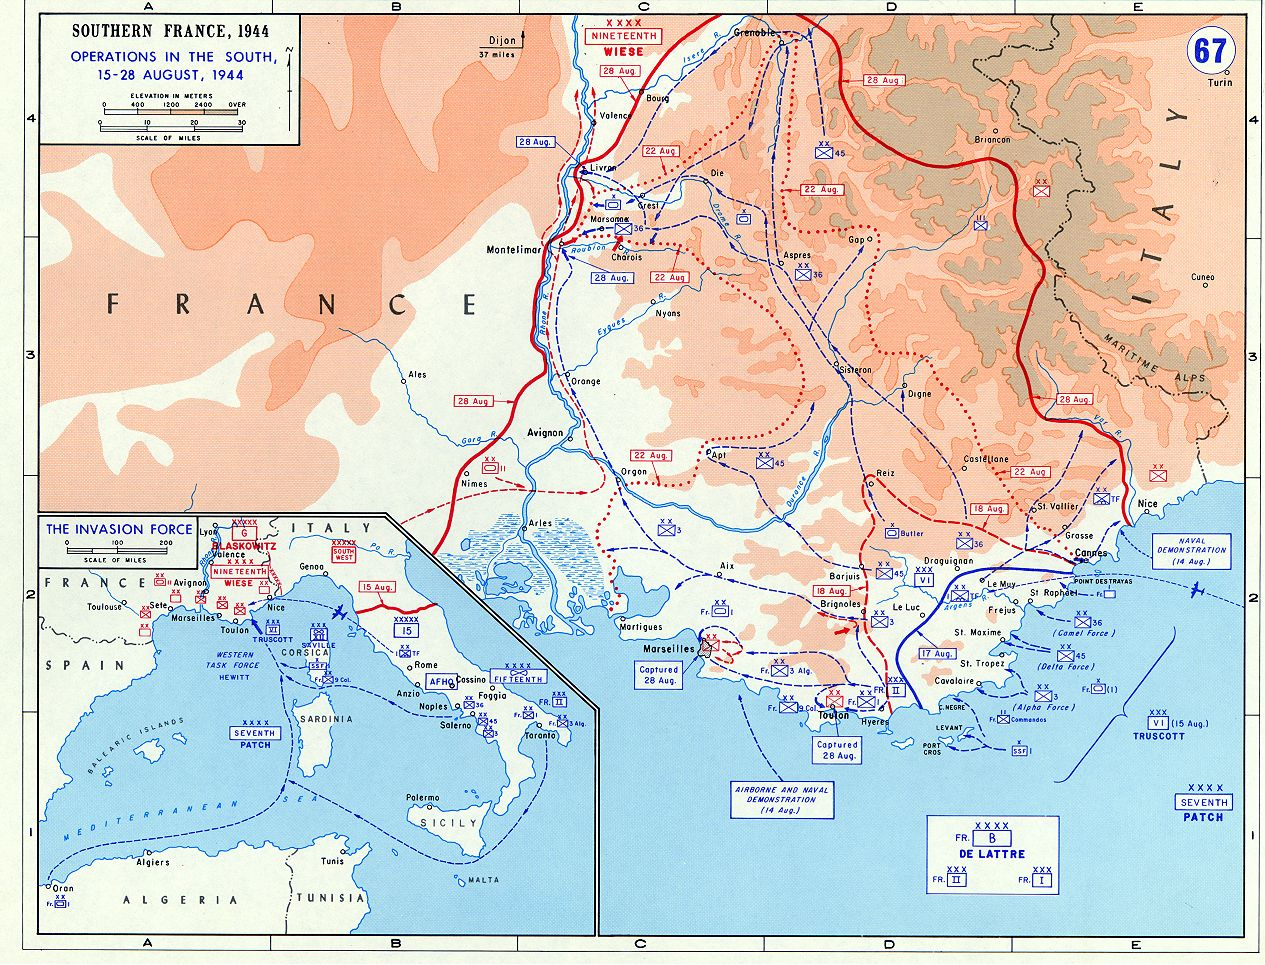 Map map of southern france during operation dragoon 15 28 aug map of southern france during operation dragoon 15 28 aug 1944 us gumiabroncs Gallery